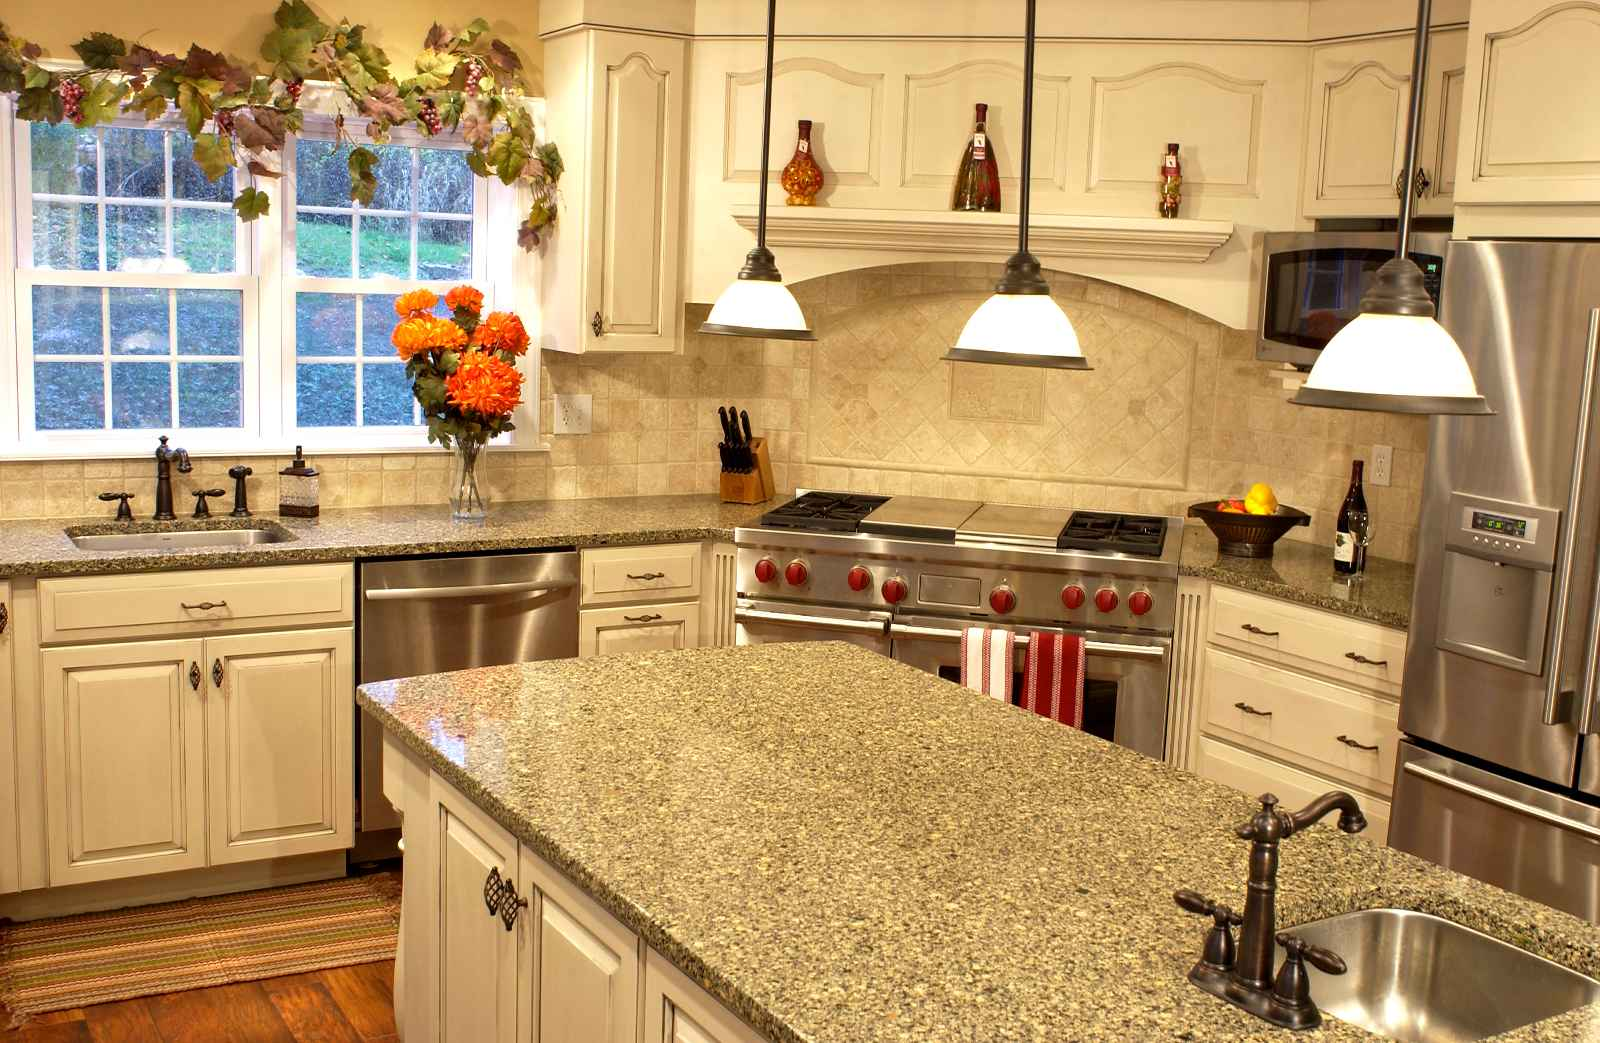 Kitchen Countertops Ideas : Cheap countertop ideas and design